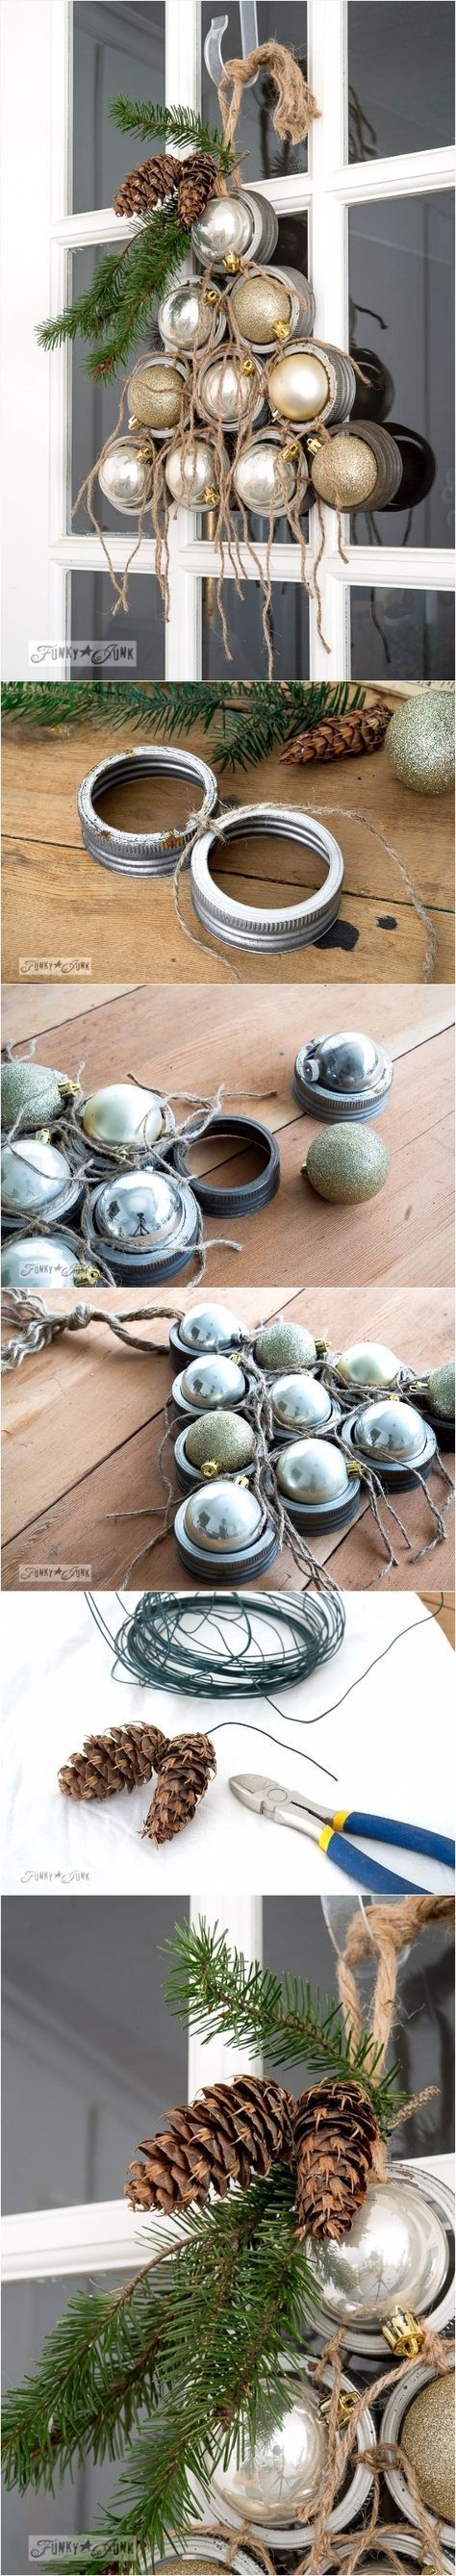 What you'll need: Mason jar canning lids Twine Ornaments Garnish of choice (I used evergreen and pinecones) Hot glue More info and instructions about this great tutorial you can find in the source url - above the photo. diycraftsclub.com is a collection of the best and most creative do it yourself projects, tips and tutorials. […]